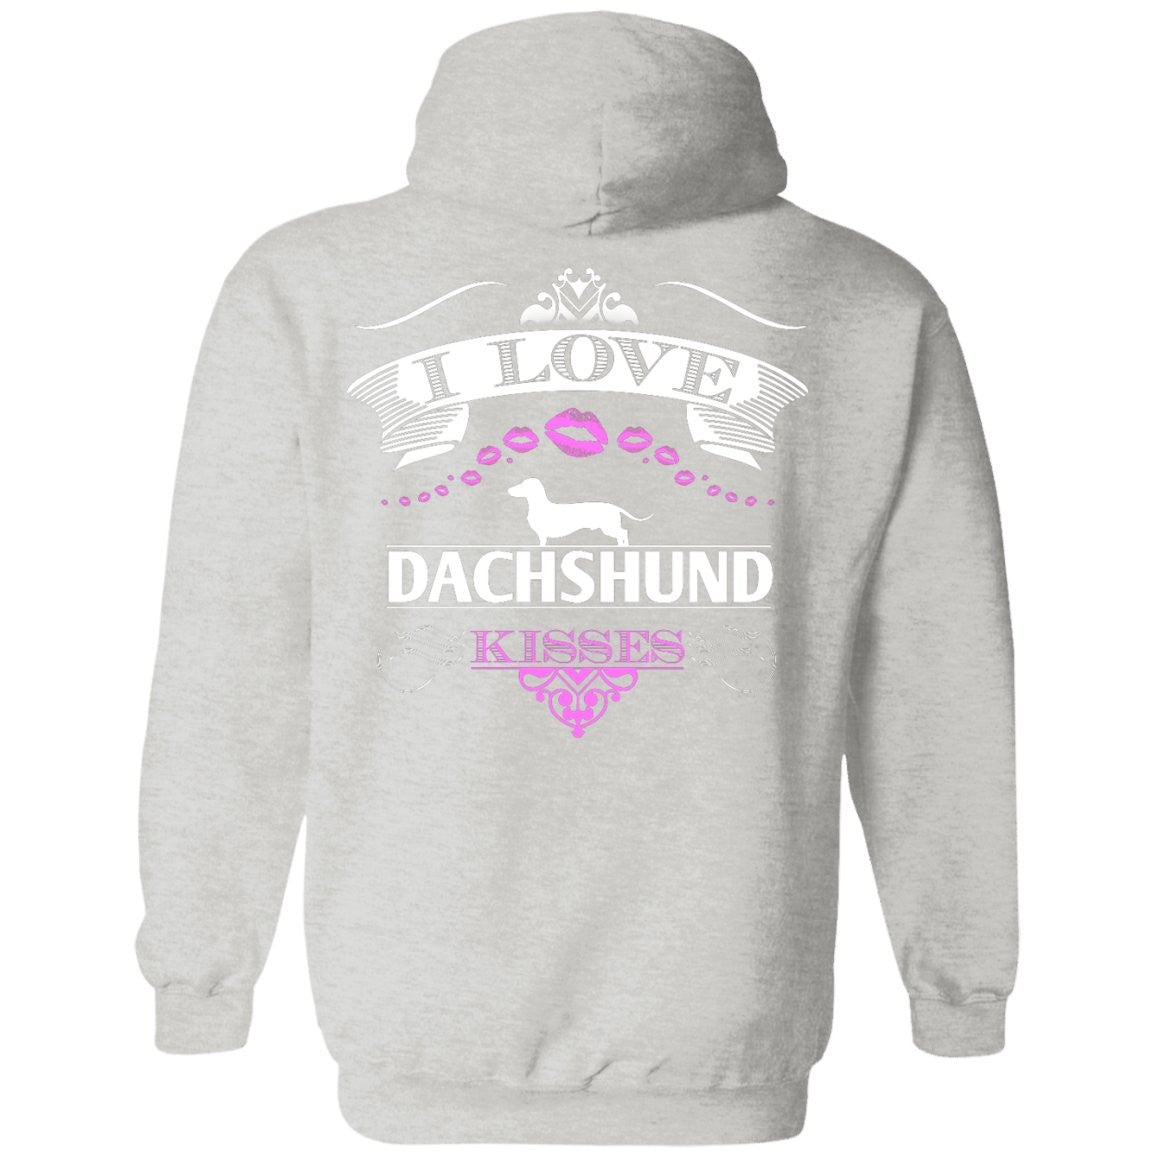 I LOVE DACHSHUND KISSES - BACK DESIGN -  Pullover Hoodie 8 oz